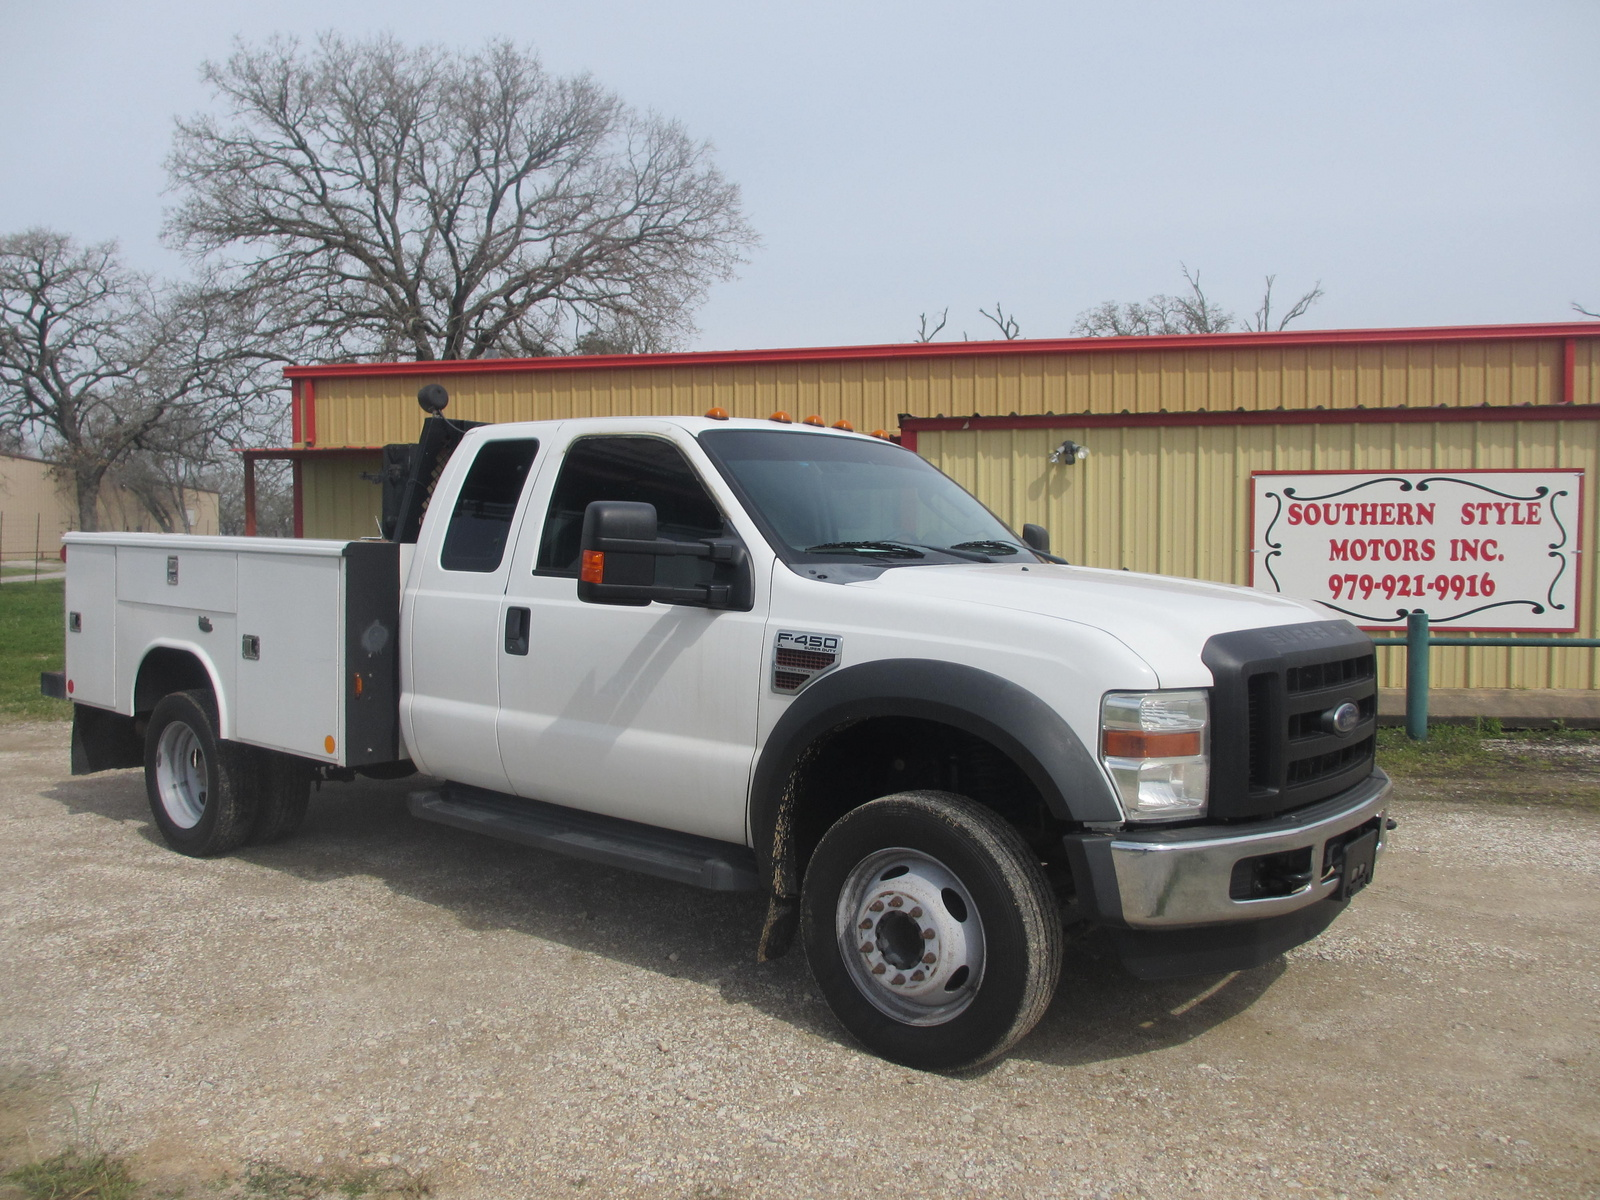 04 for f ford f 250 super duty tow autos post. Black Bedroom Furniture Sets. Home Design Ideas